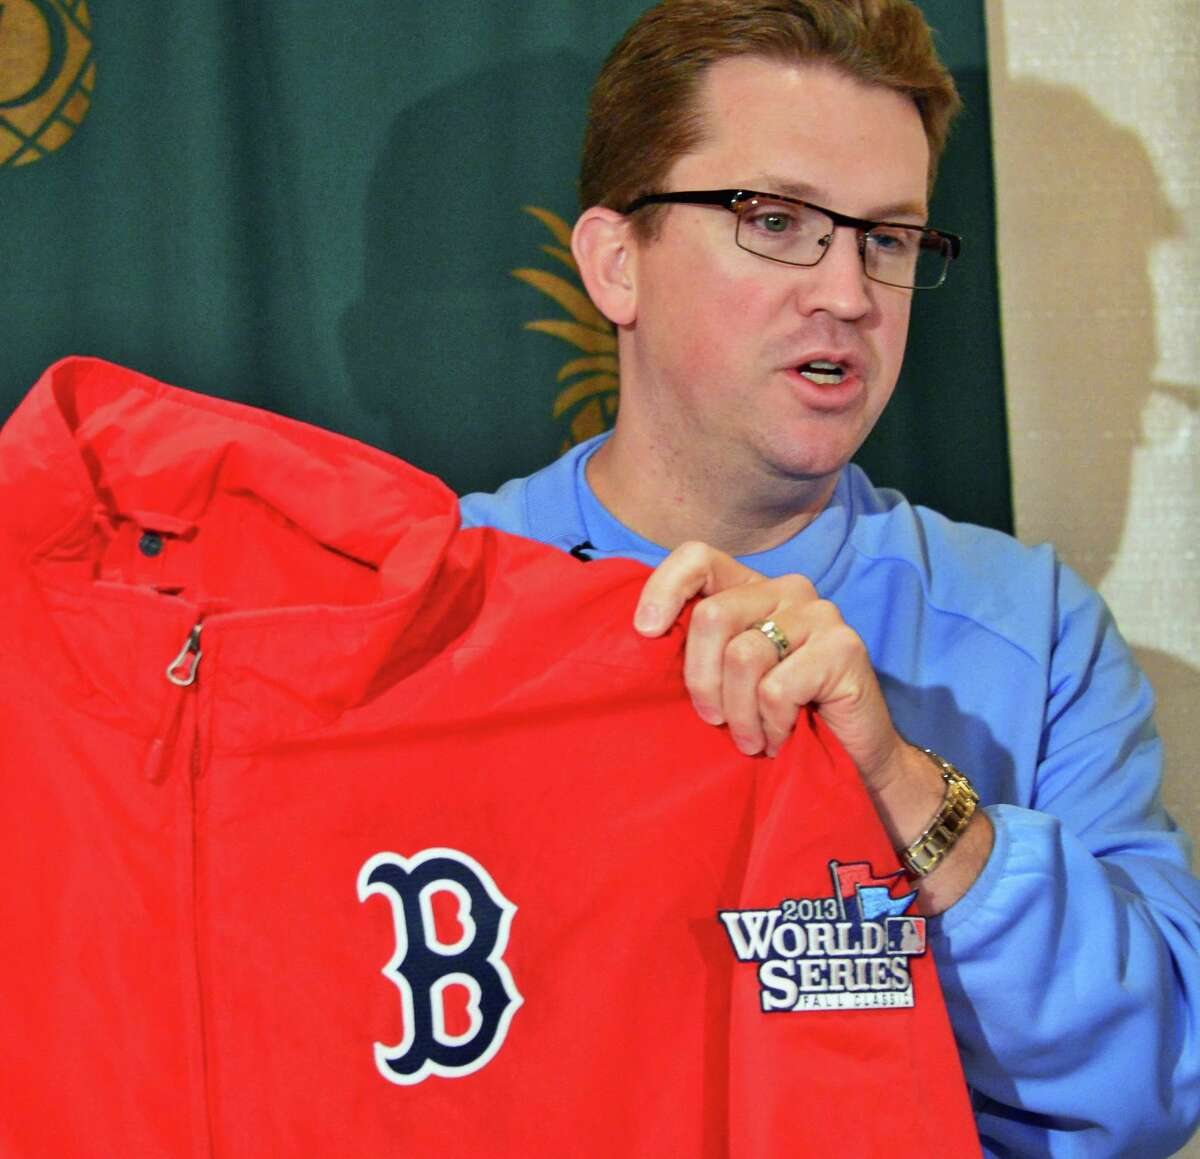 Brad Horn, director of education at the Baseball Hall of Fame, holds Red Sox manager John Farrell's jacket among the 2013 World Series artifacts en route to Cooperstown on Thursday Oct. 31, 2013. The artifacts were displayed during a news conference at the Desmond Hotel in Colonie, N.Y. (John Carl D'Annibale / Times Union)